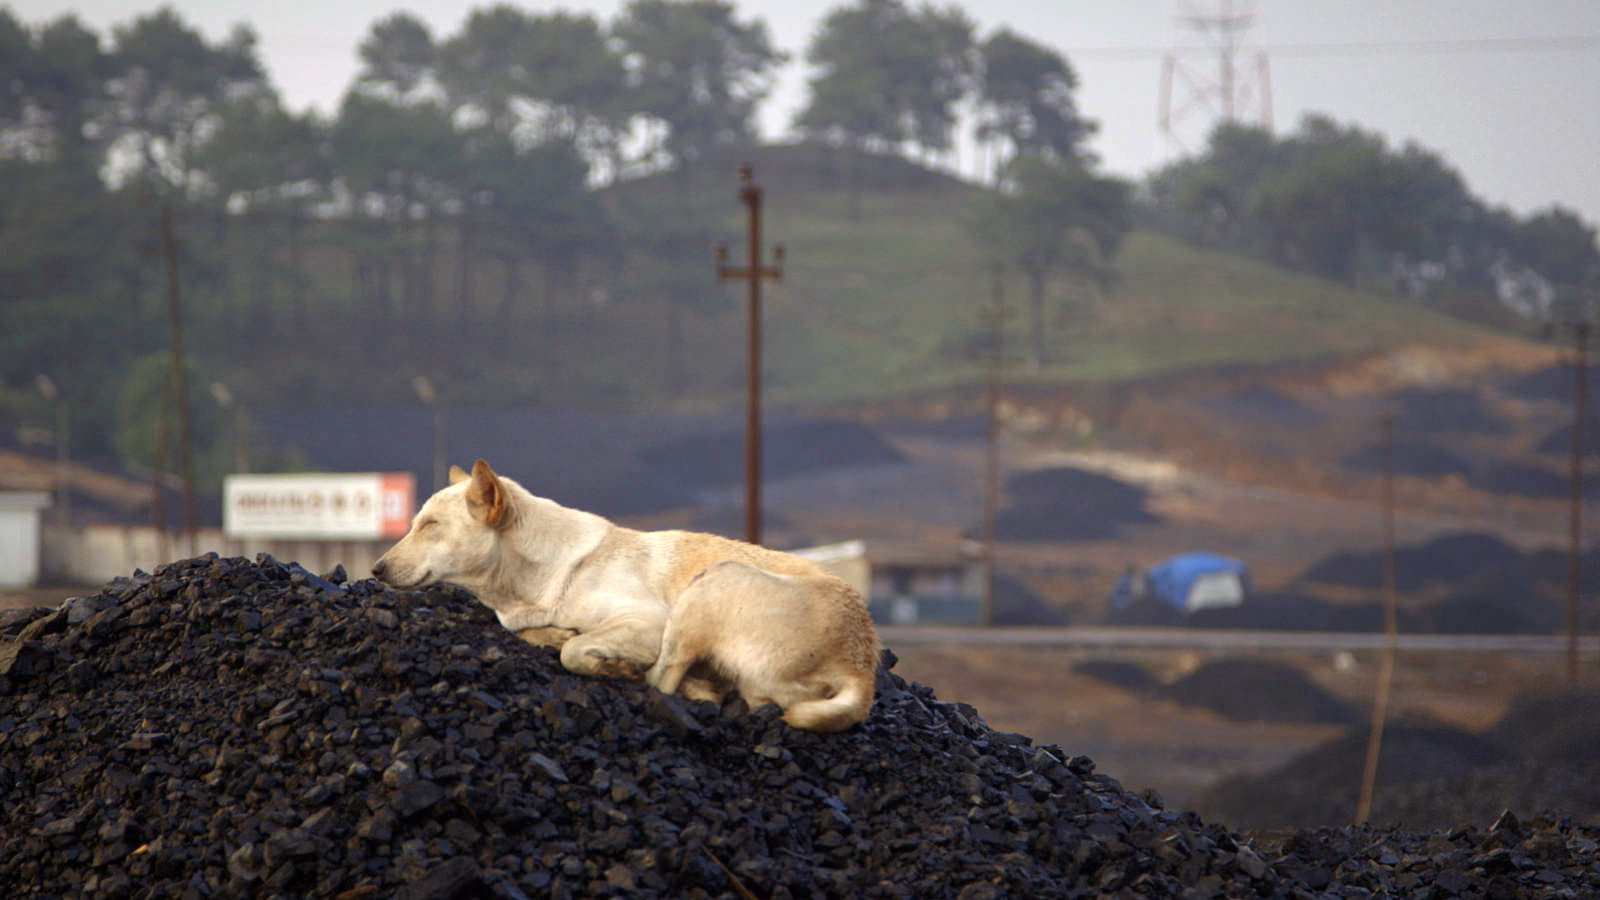 Representative image of coal mining. Credit: Flickr/ECSP CC 2.0